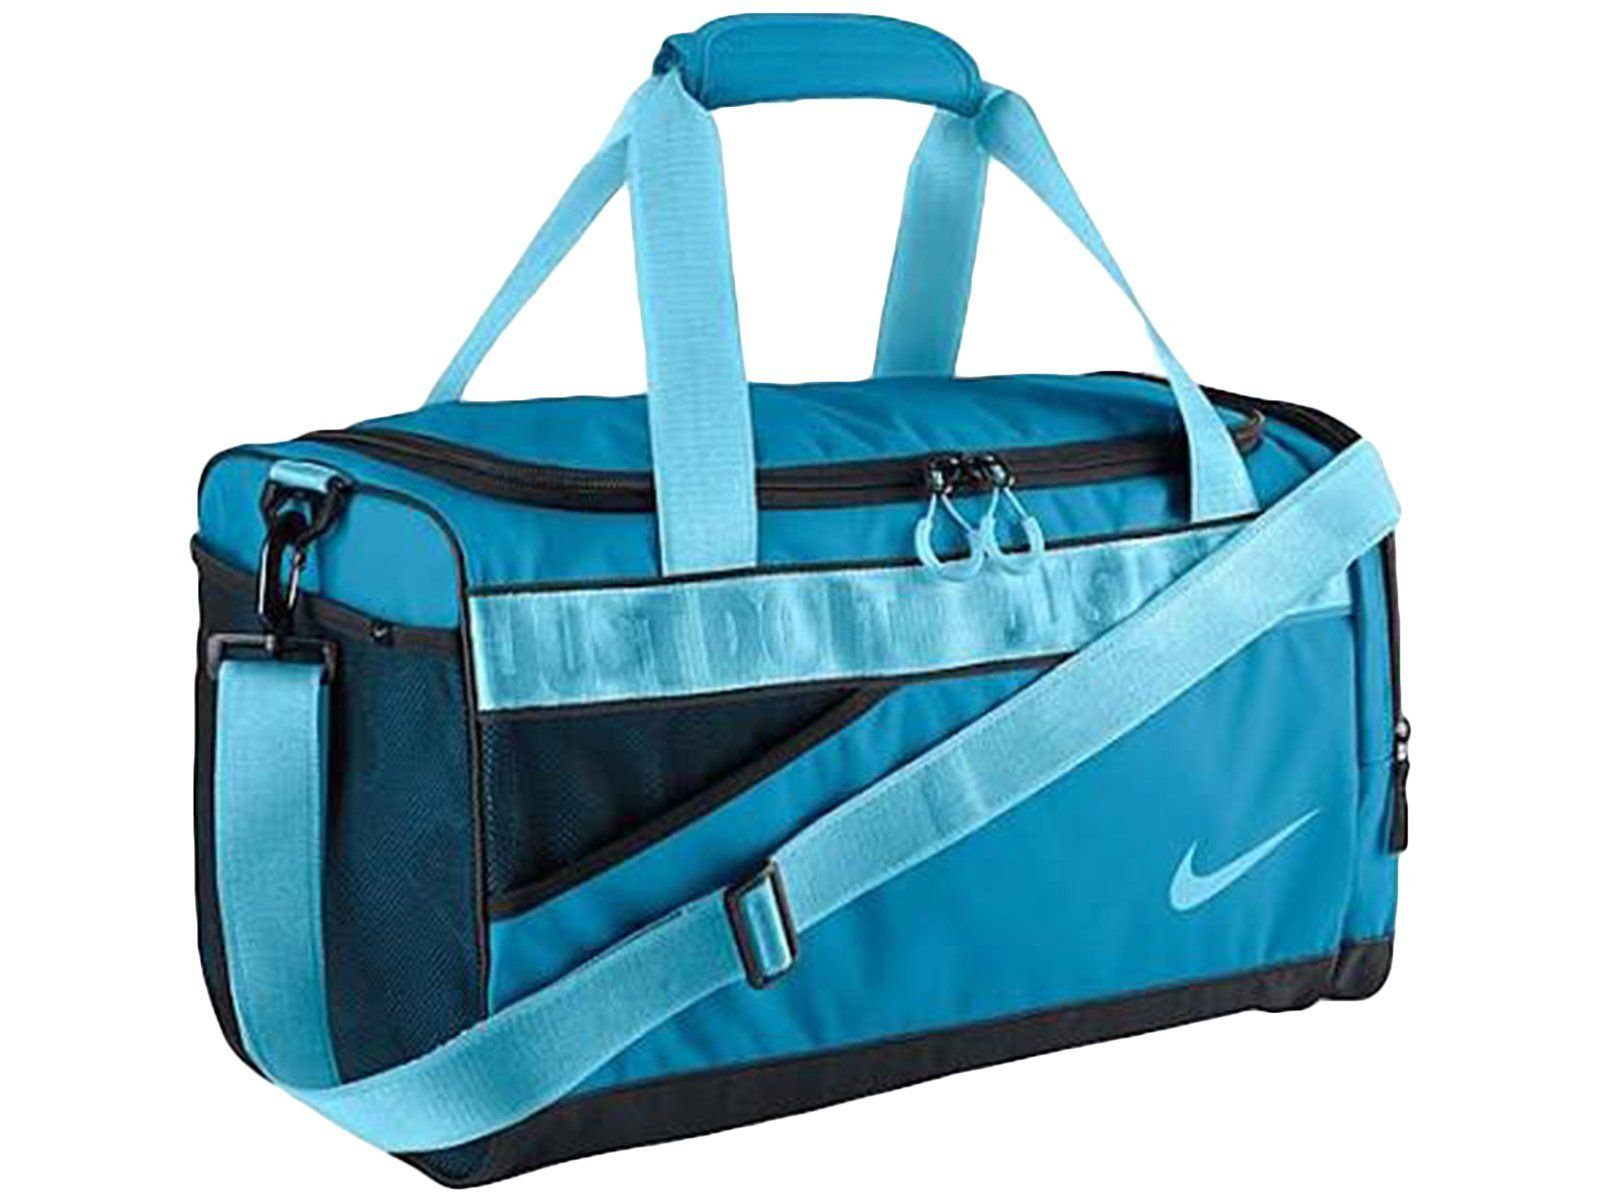 d558b9baa257 Amazon.com  Nike Varsity 2.0 Duffel Gym Bag in Blue and Black for Women and  Girls  Sports   Outdoors